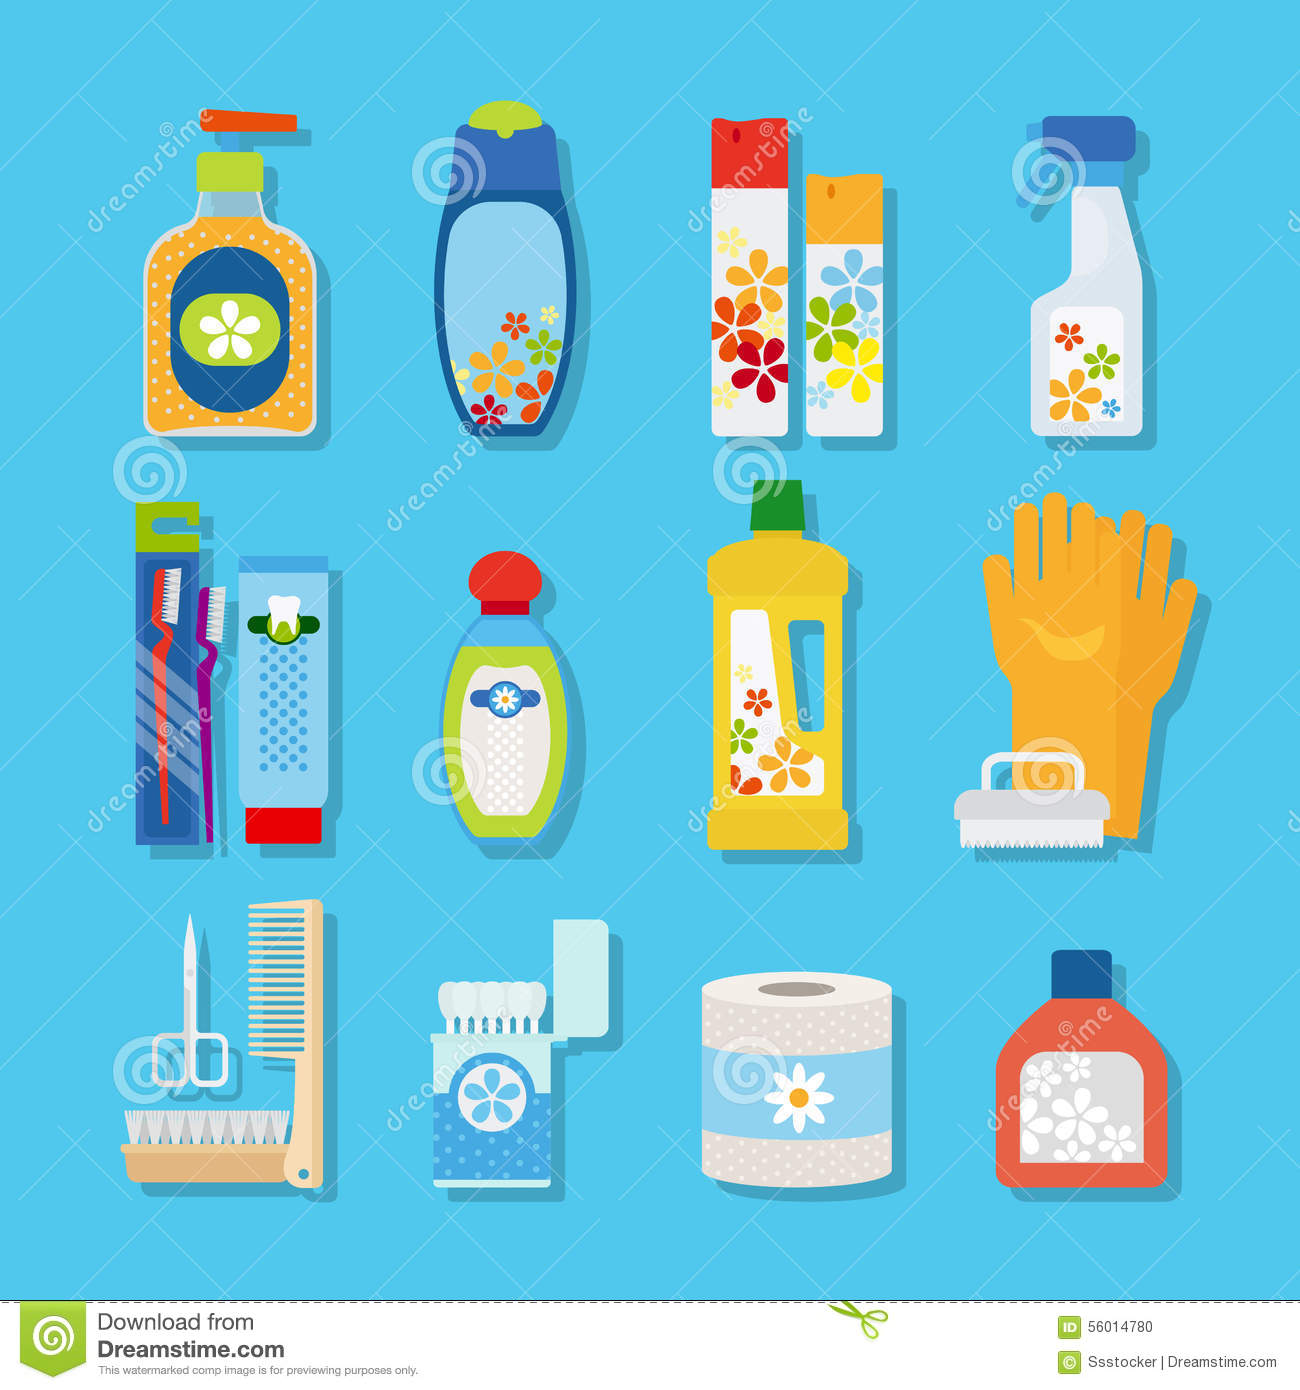 Hygiene And Cleaning Products Flat Icons Stock Vector.